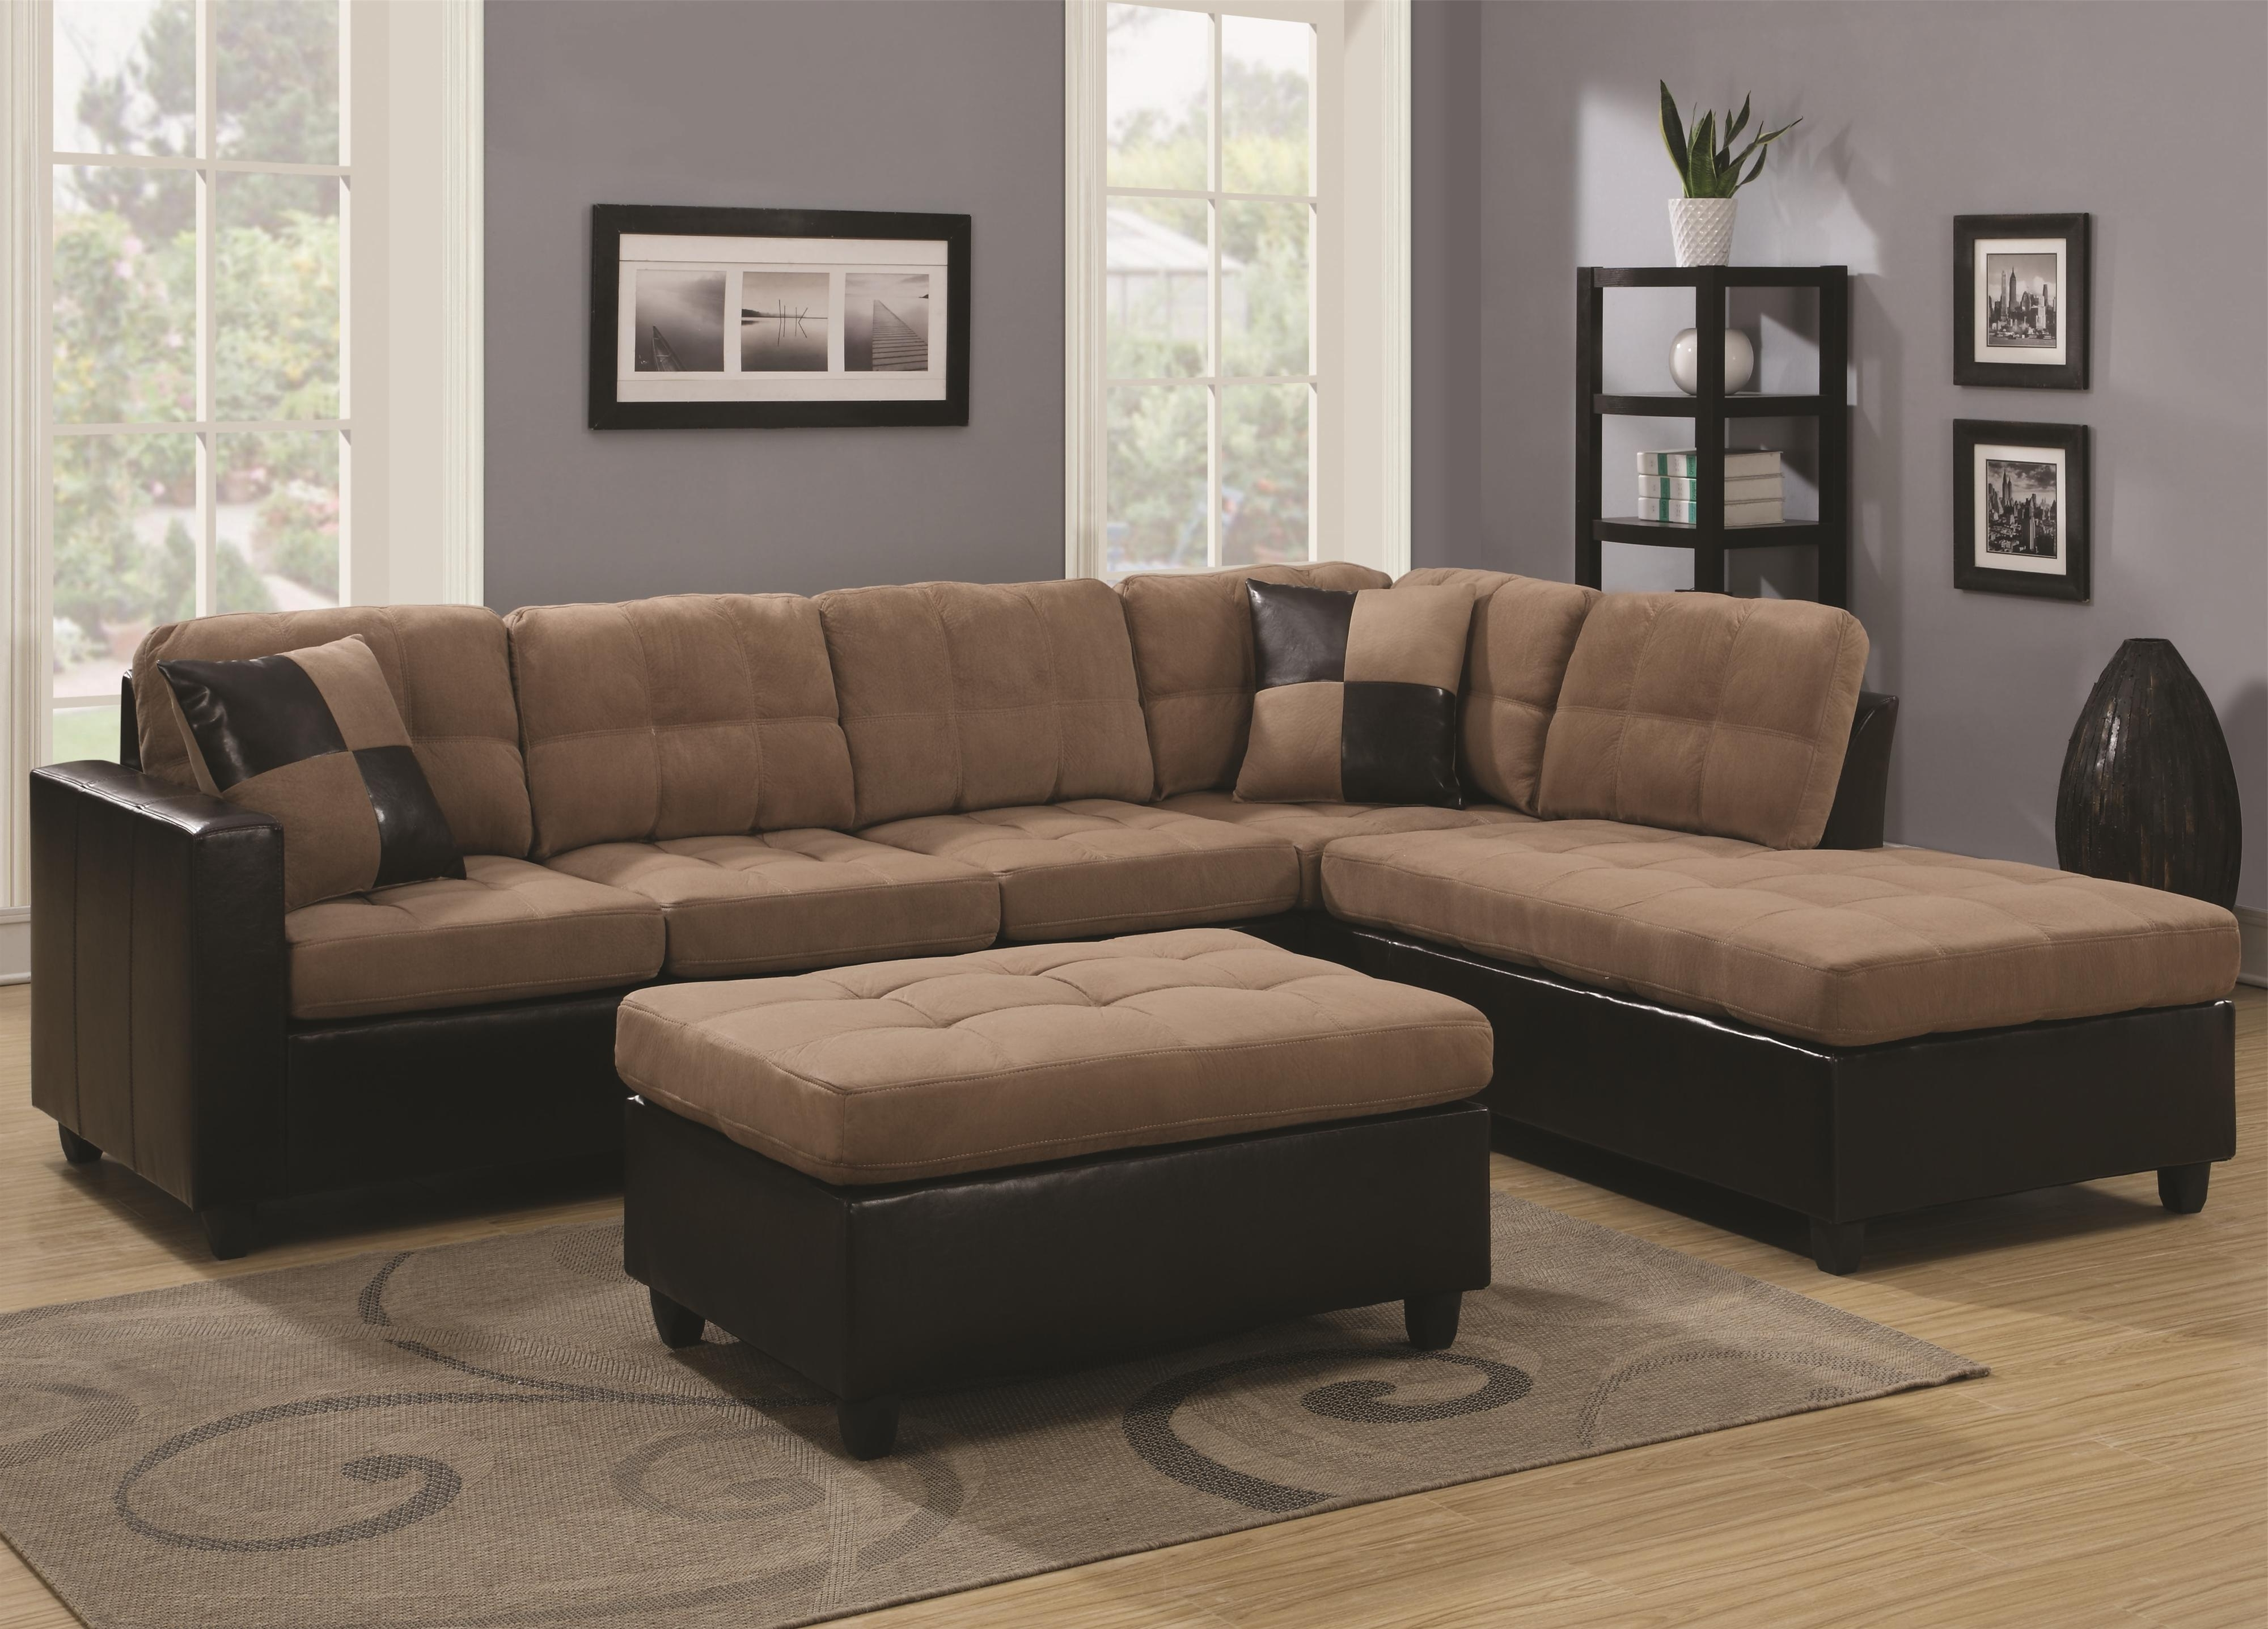 Aifaresidency Pertaining To 2019 Affordable Sectional Sofas (View 8 of 20)